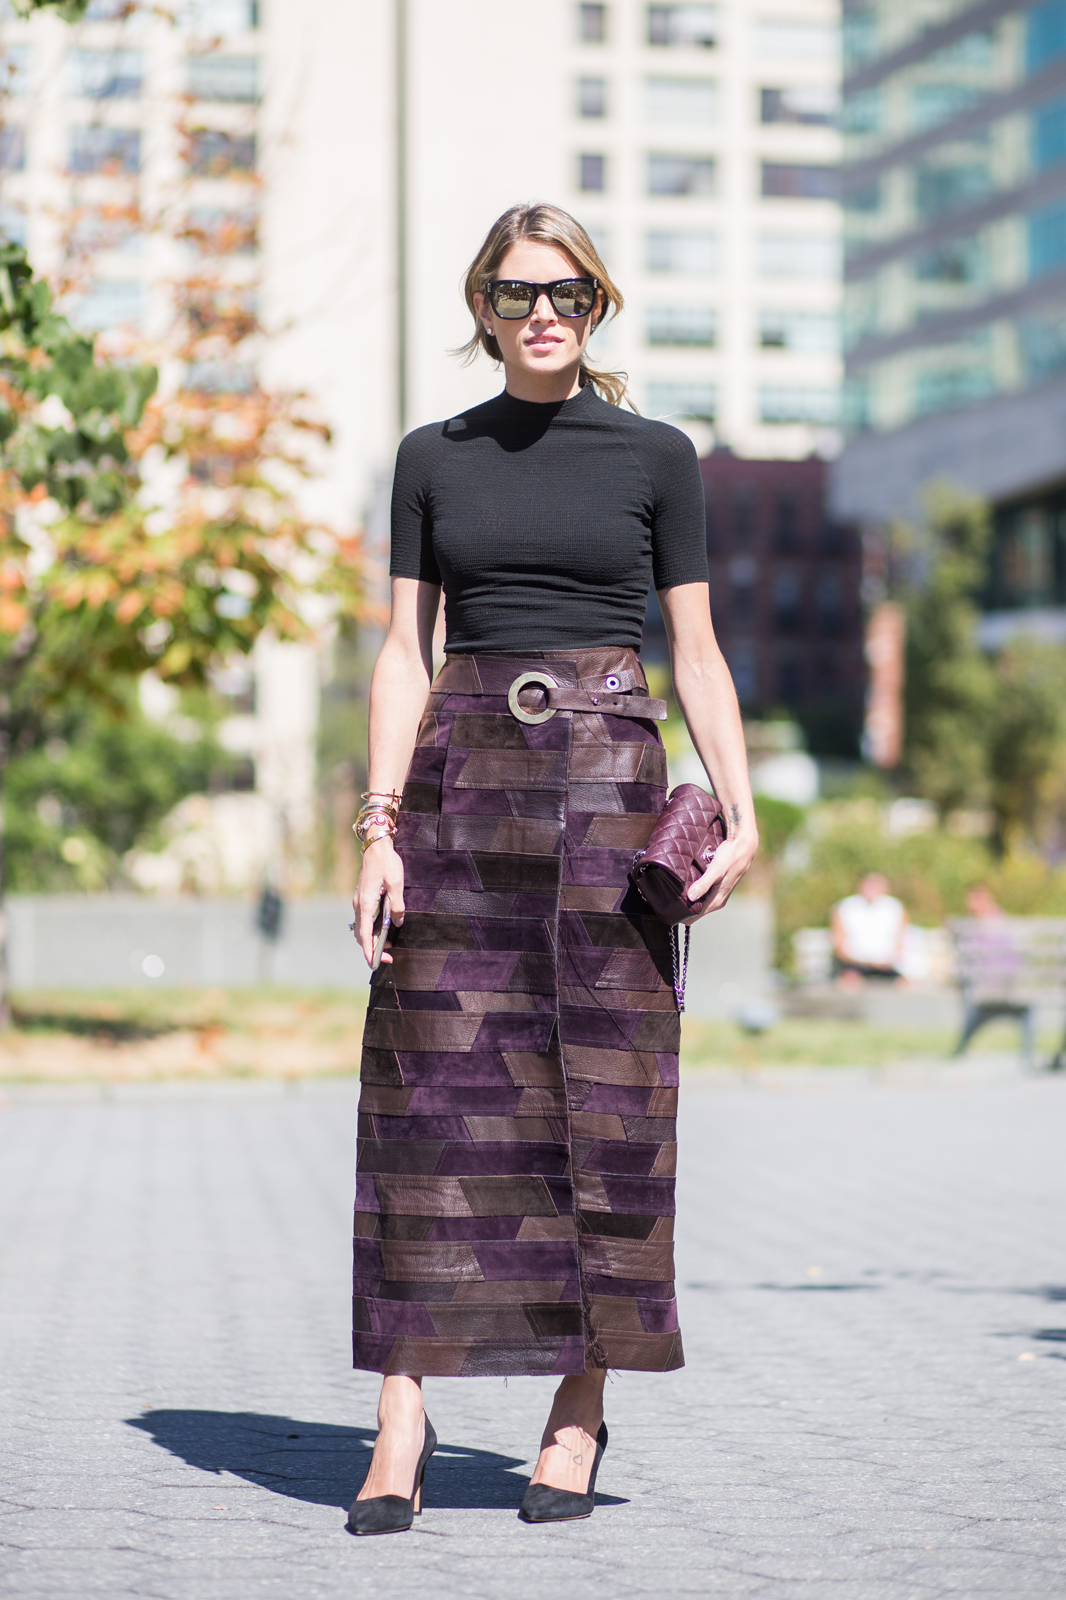 Skirts midi are in style for best photo